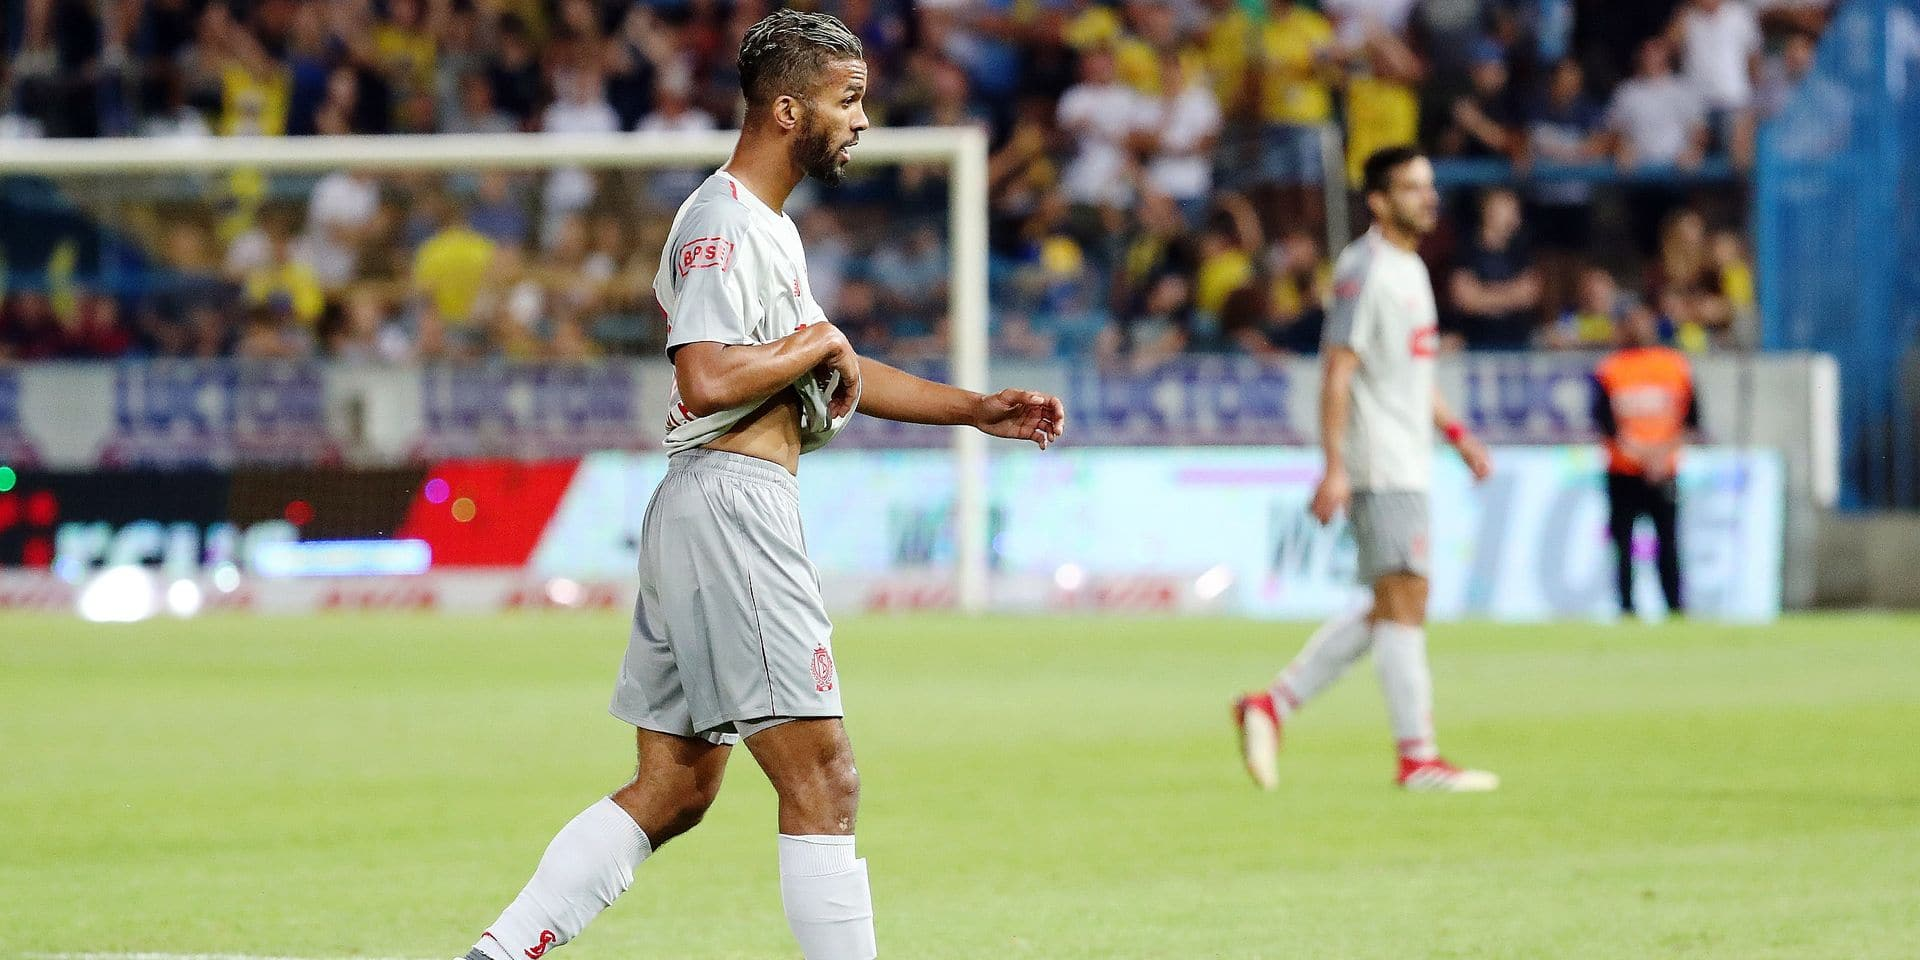 Standard's Mehdi Carcela leaves the field after receiving a red card during the Jupiler Pro League match between Waasland-Beveren and Standard de Liege, in Beveren-Waas, Friday 03 August 2018, on the second day of the Jupiler Pro League, the Belgian soccer championship season 2018-2019. BELGA PHOTO VIRGINIE LEFOUR